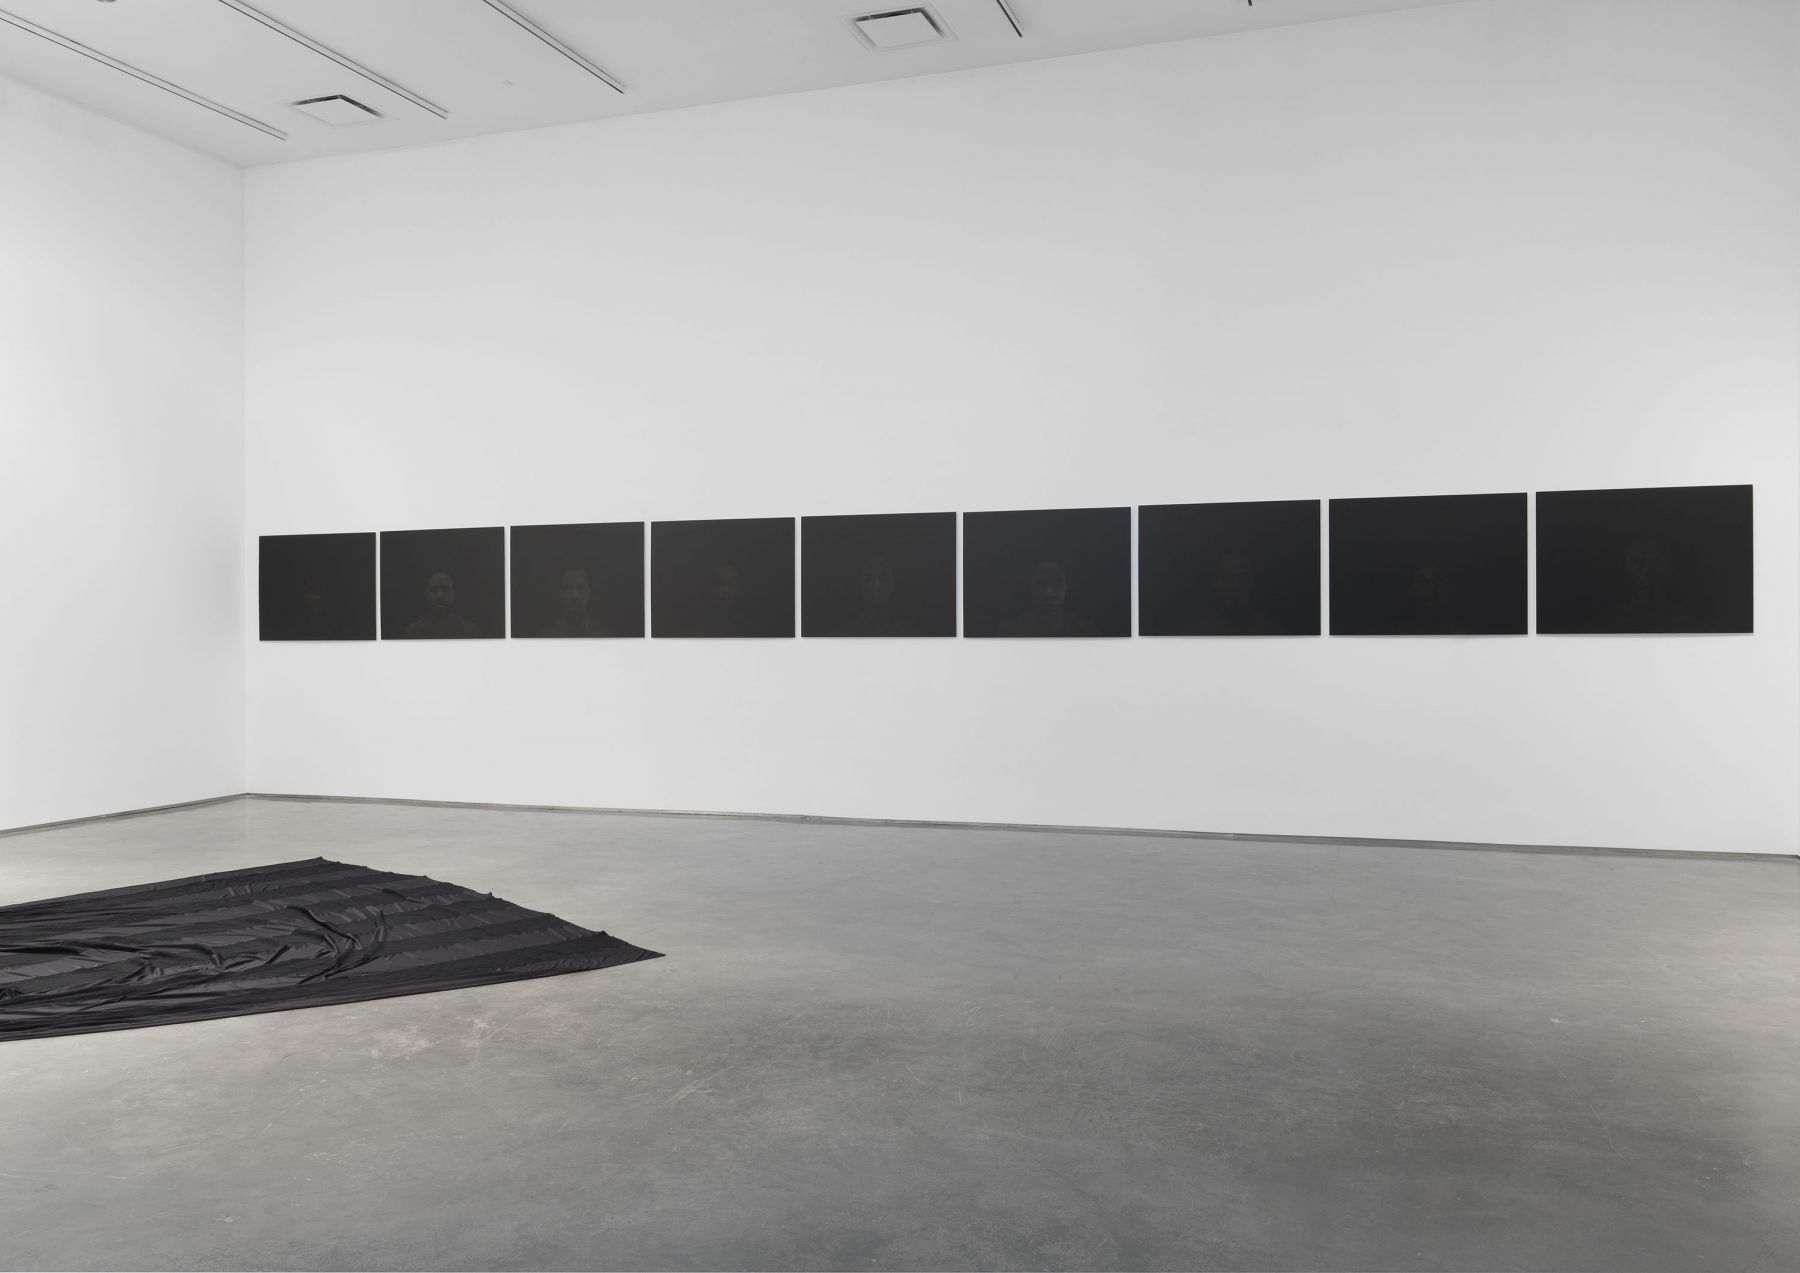 Pure, Very, New(Installation View), Boesky Gallery, 2019